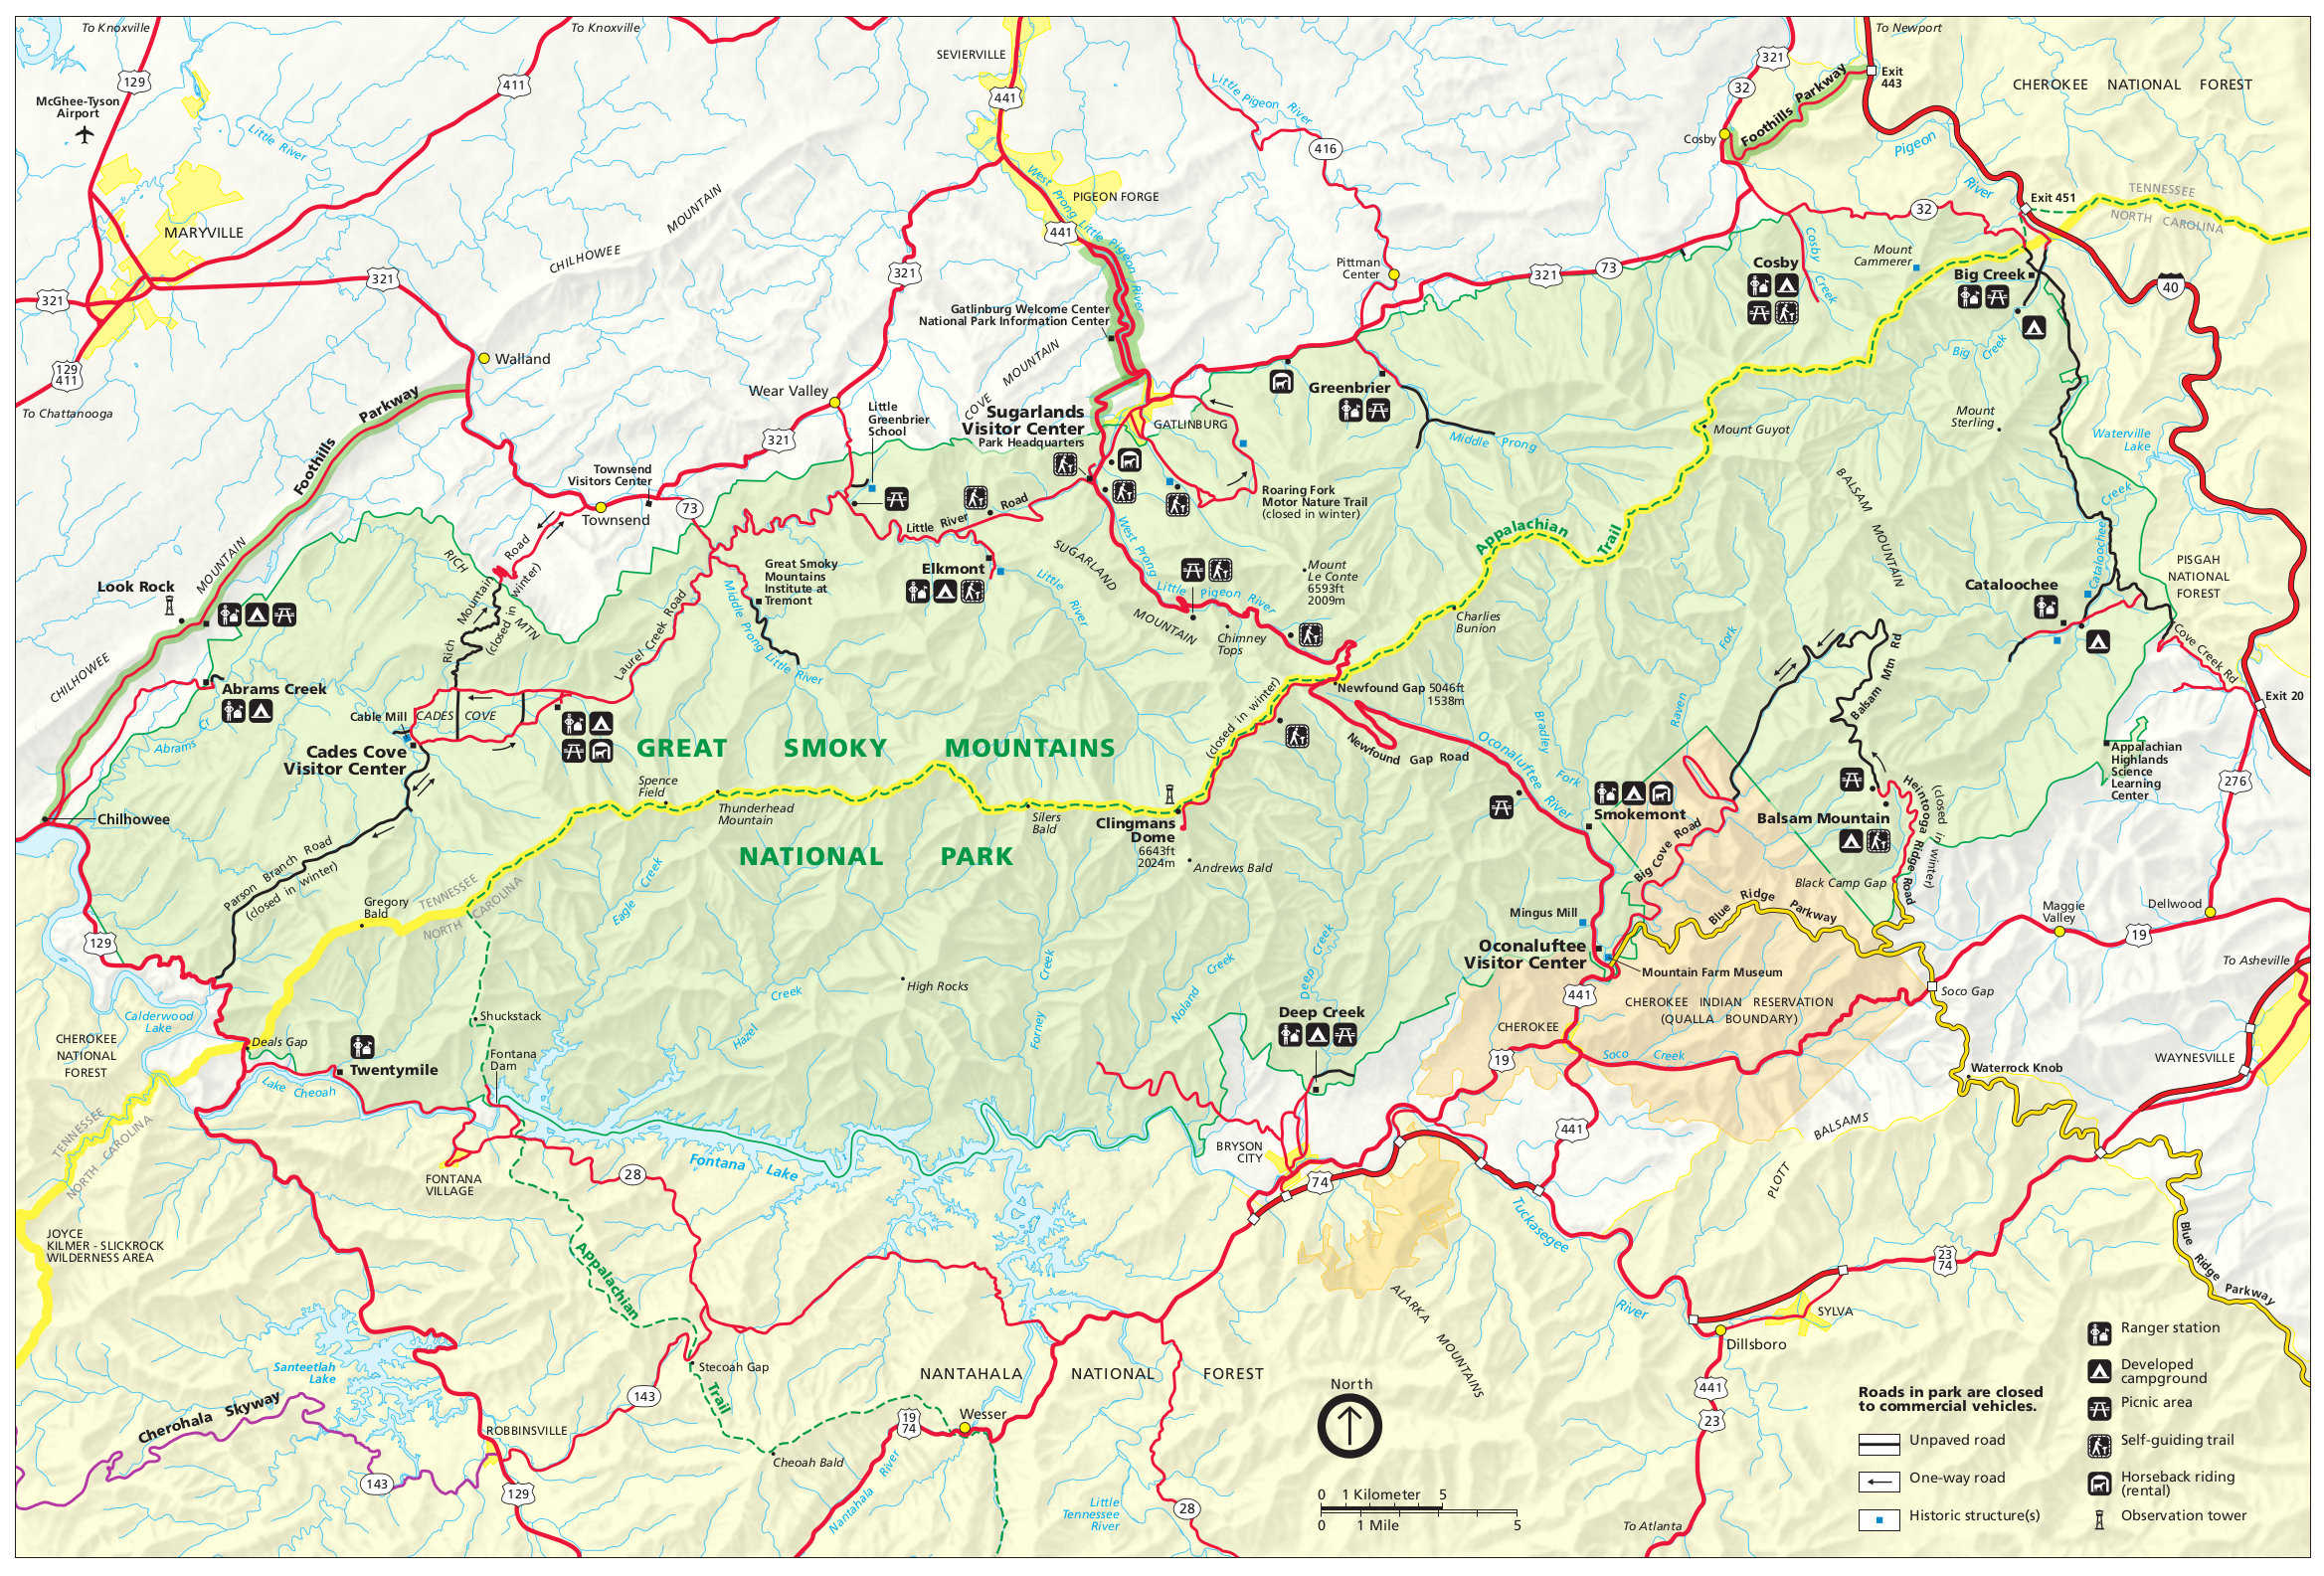 Great Smoky Mountains Maps | NPMaps.com - just free maps, period.